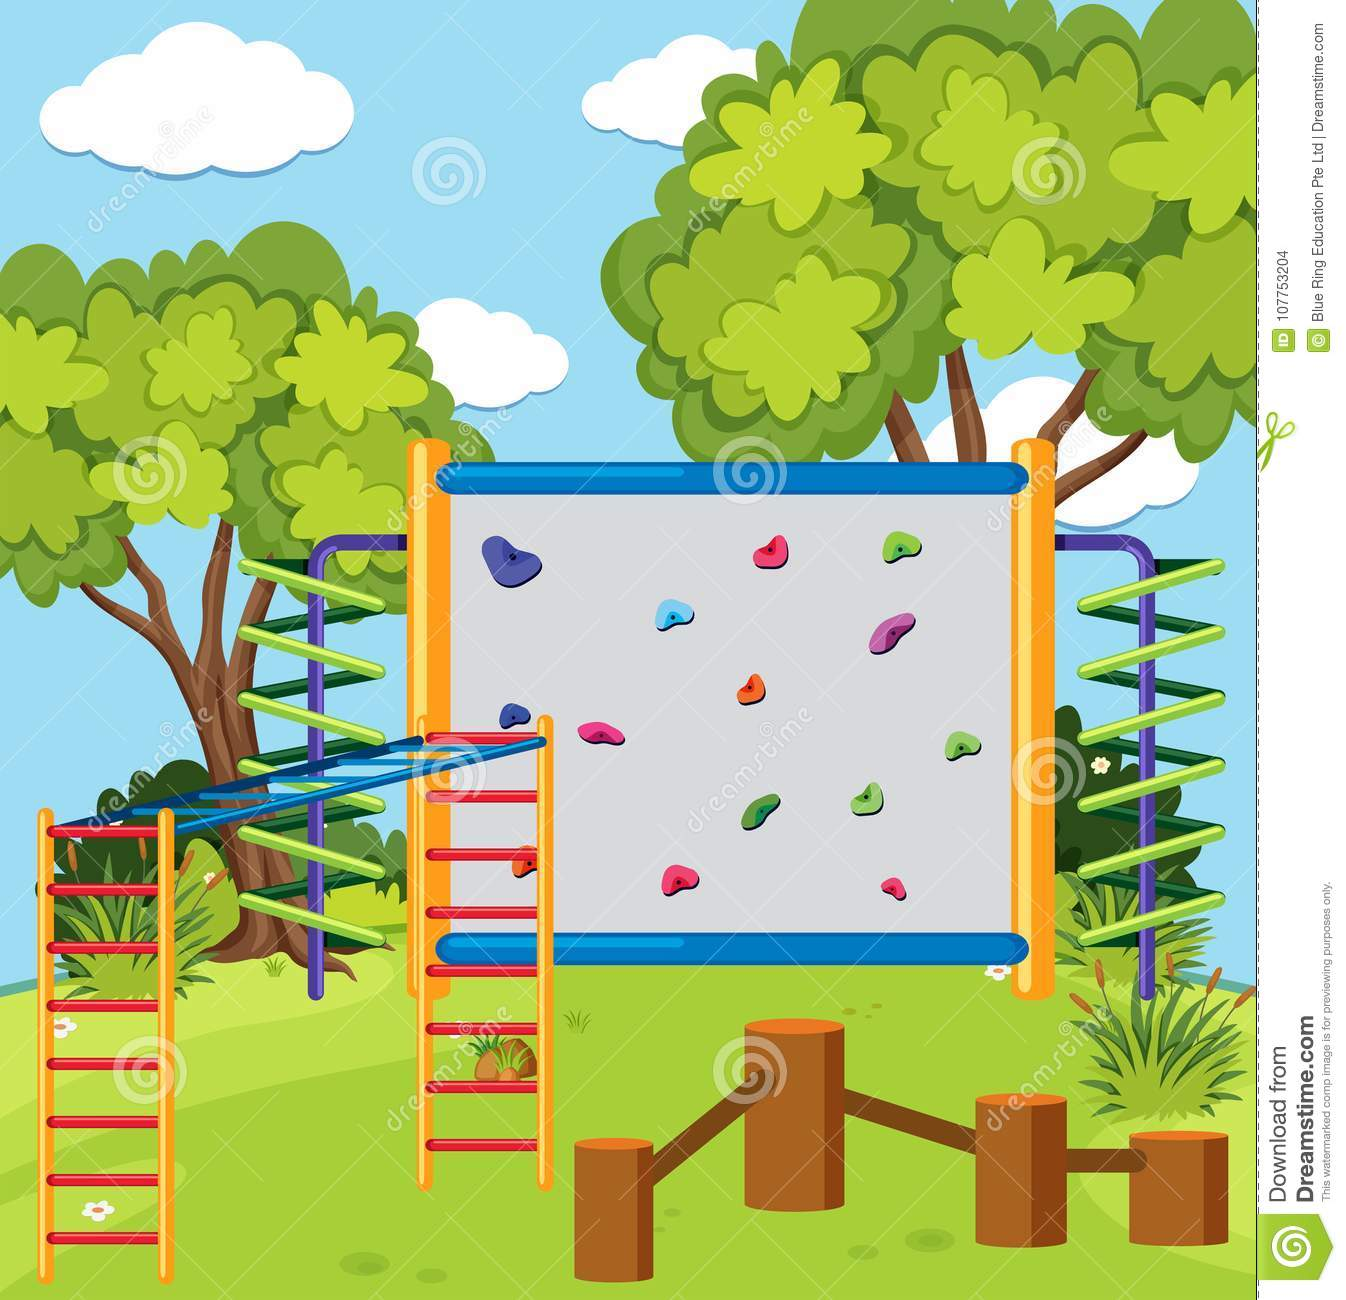 Monkey Bar And Climbing Wall In The Playground Stock Vector